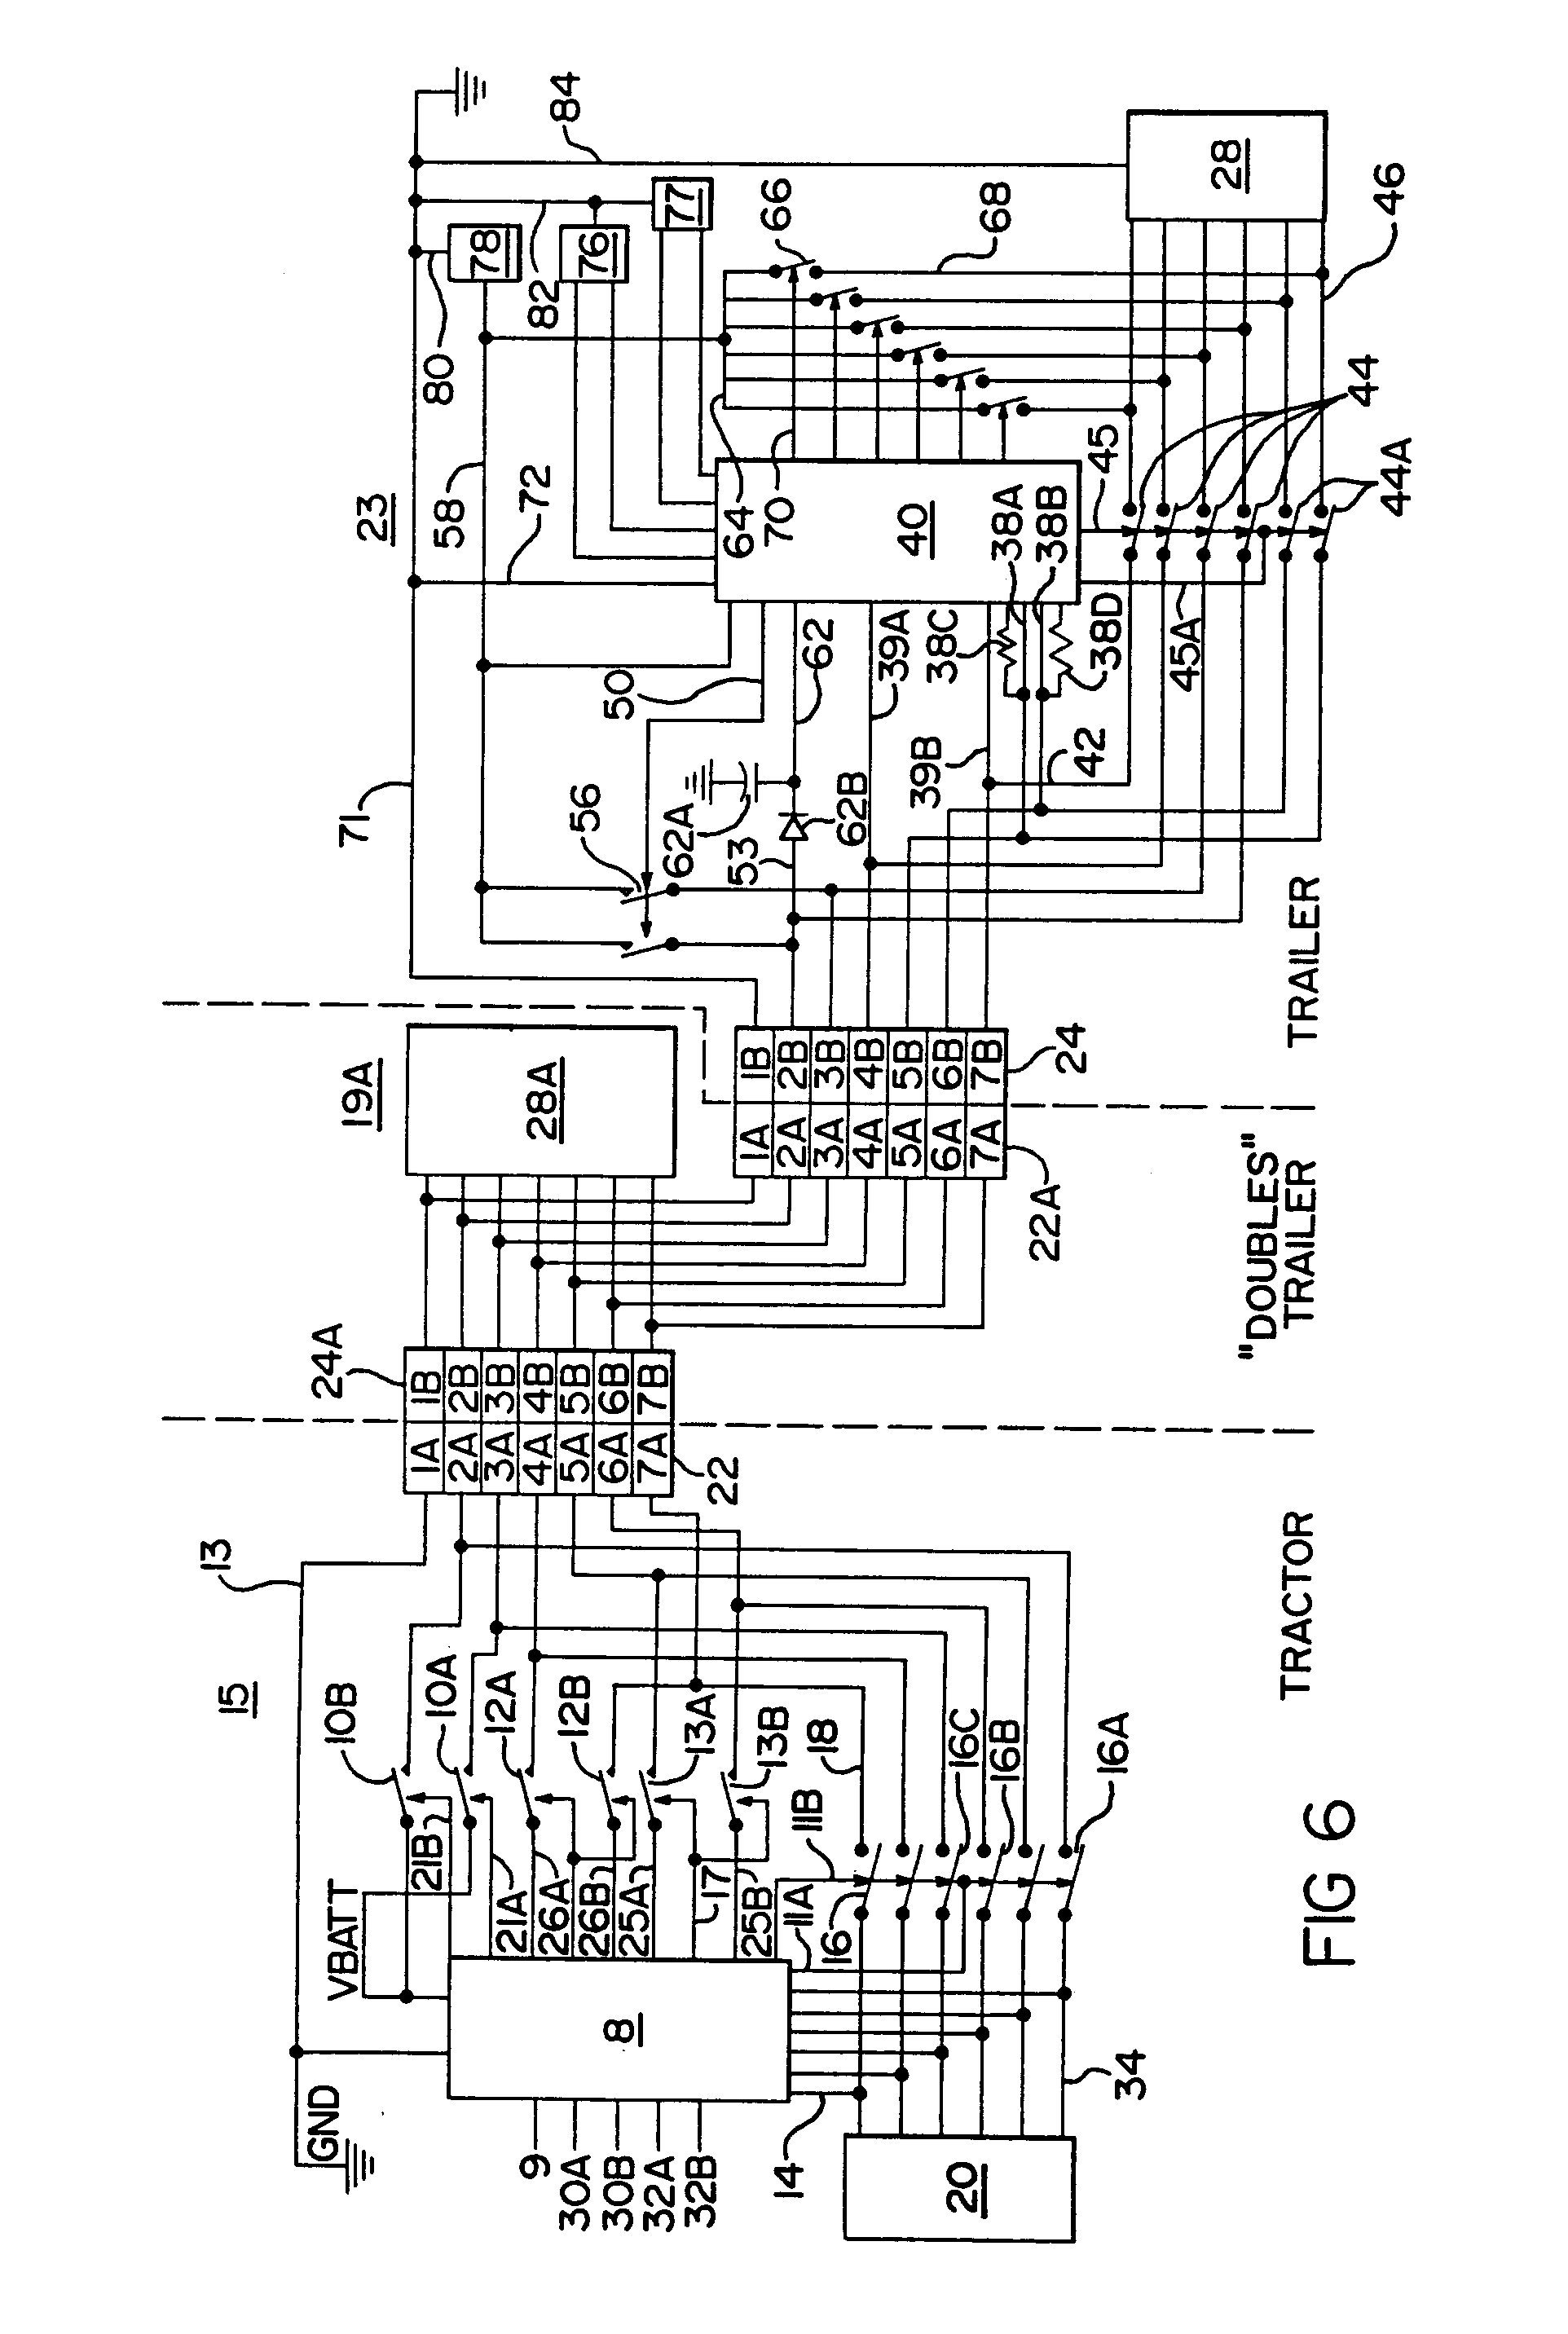 imgf0004 patent ep0546370a1 truck tractor and trailer electrical bendix trailer abs wiring diagram at bakdesigns.co